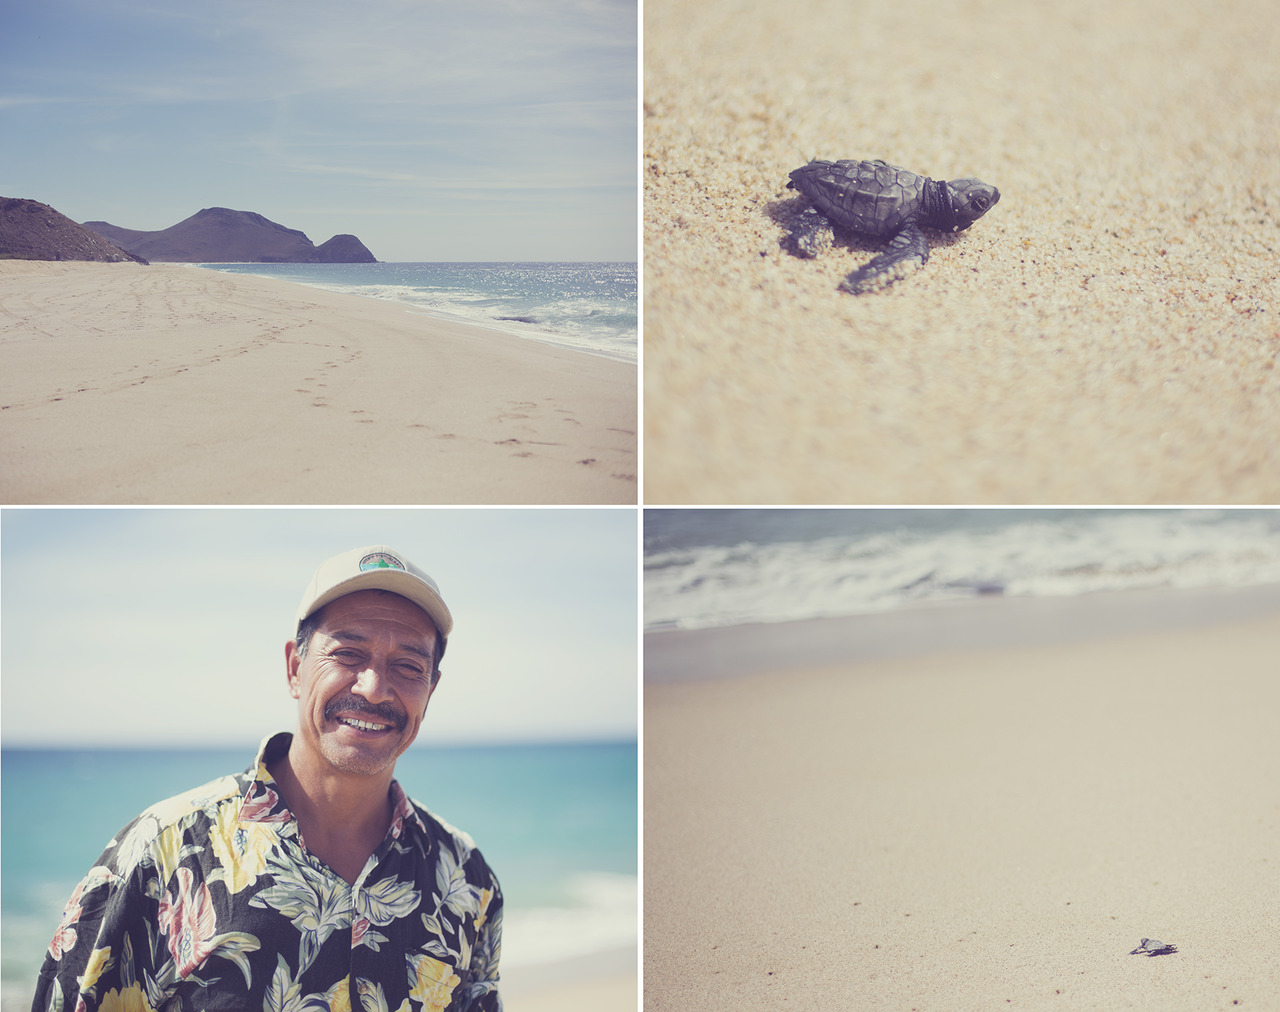 I happened to stumble on an empty beach and a nice man who let me help him release baby turtles into the ocean.   Playa La Cachora   Todos Santos, Mexico